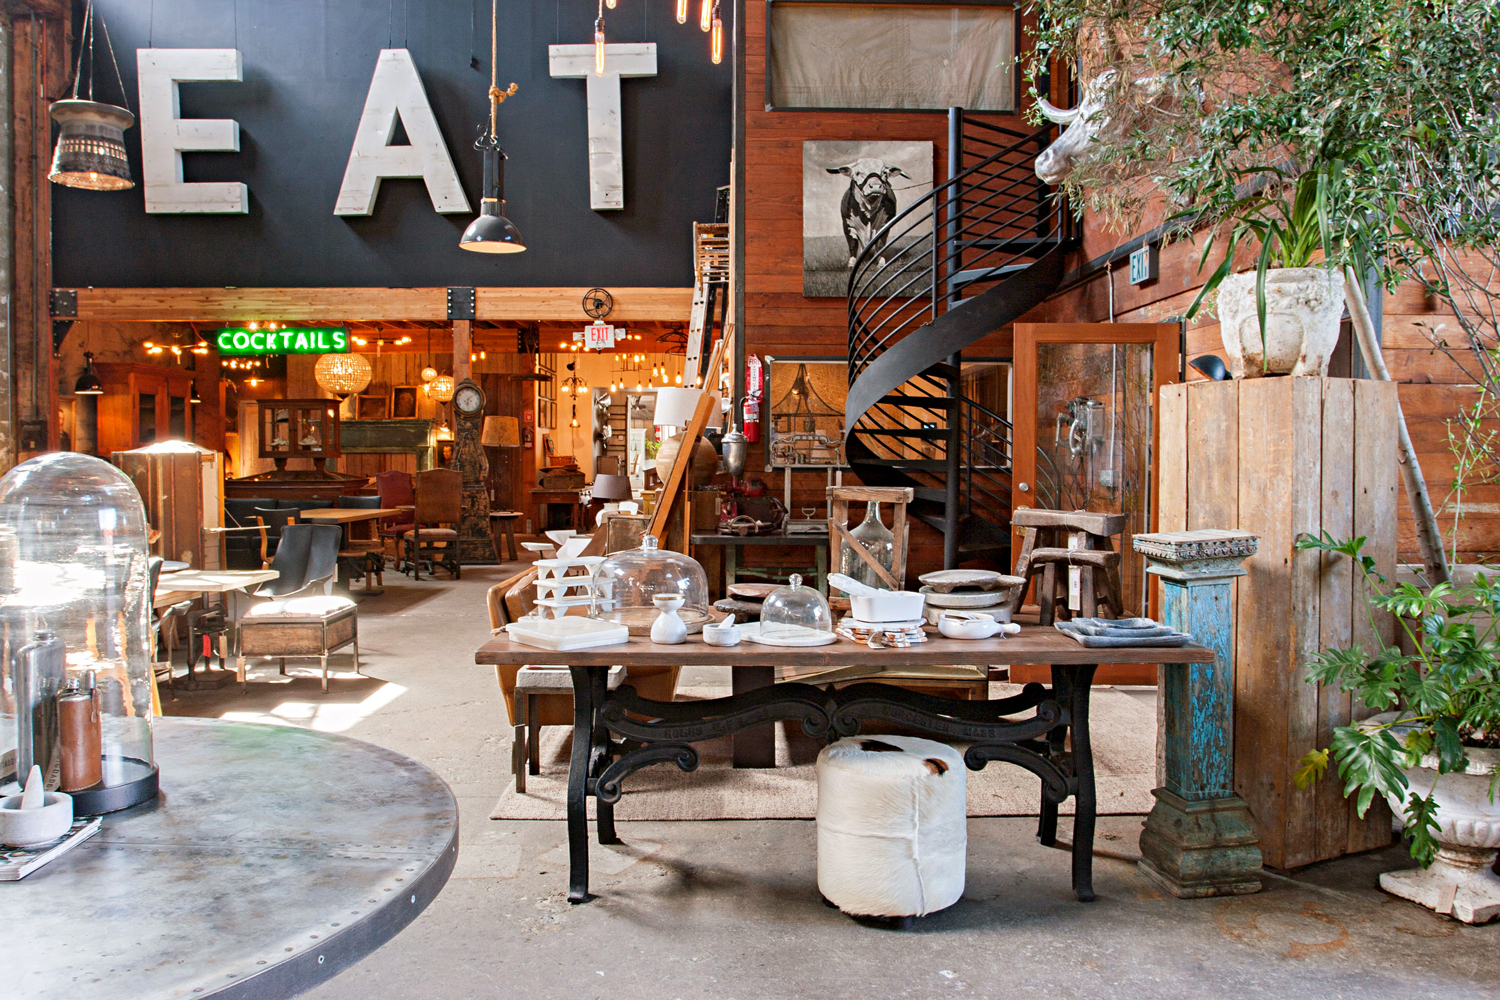 antique store with sign saying eat